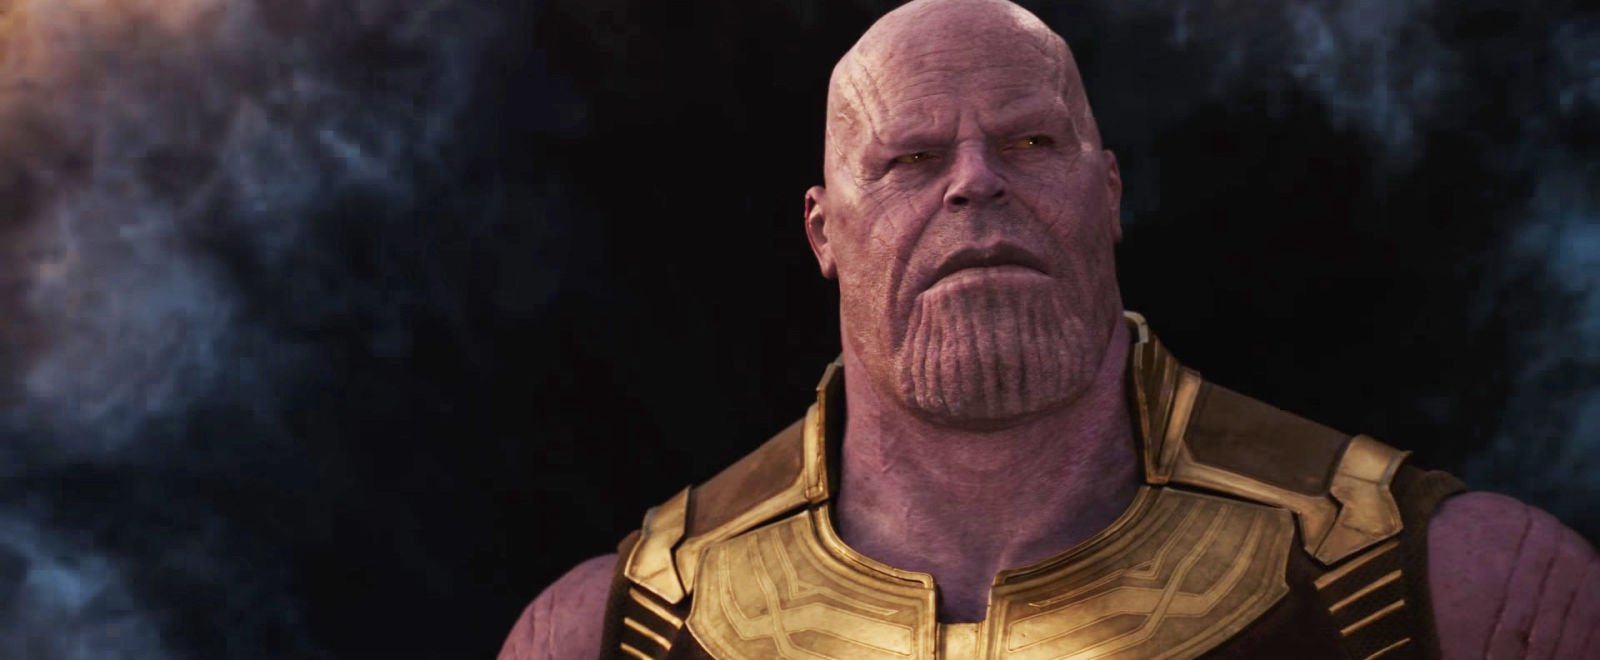 Avengers 4 release date, cast, title and everything you need to know